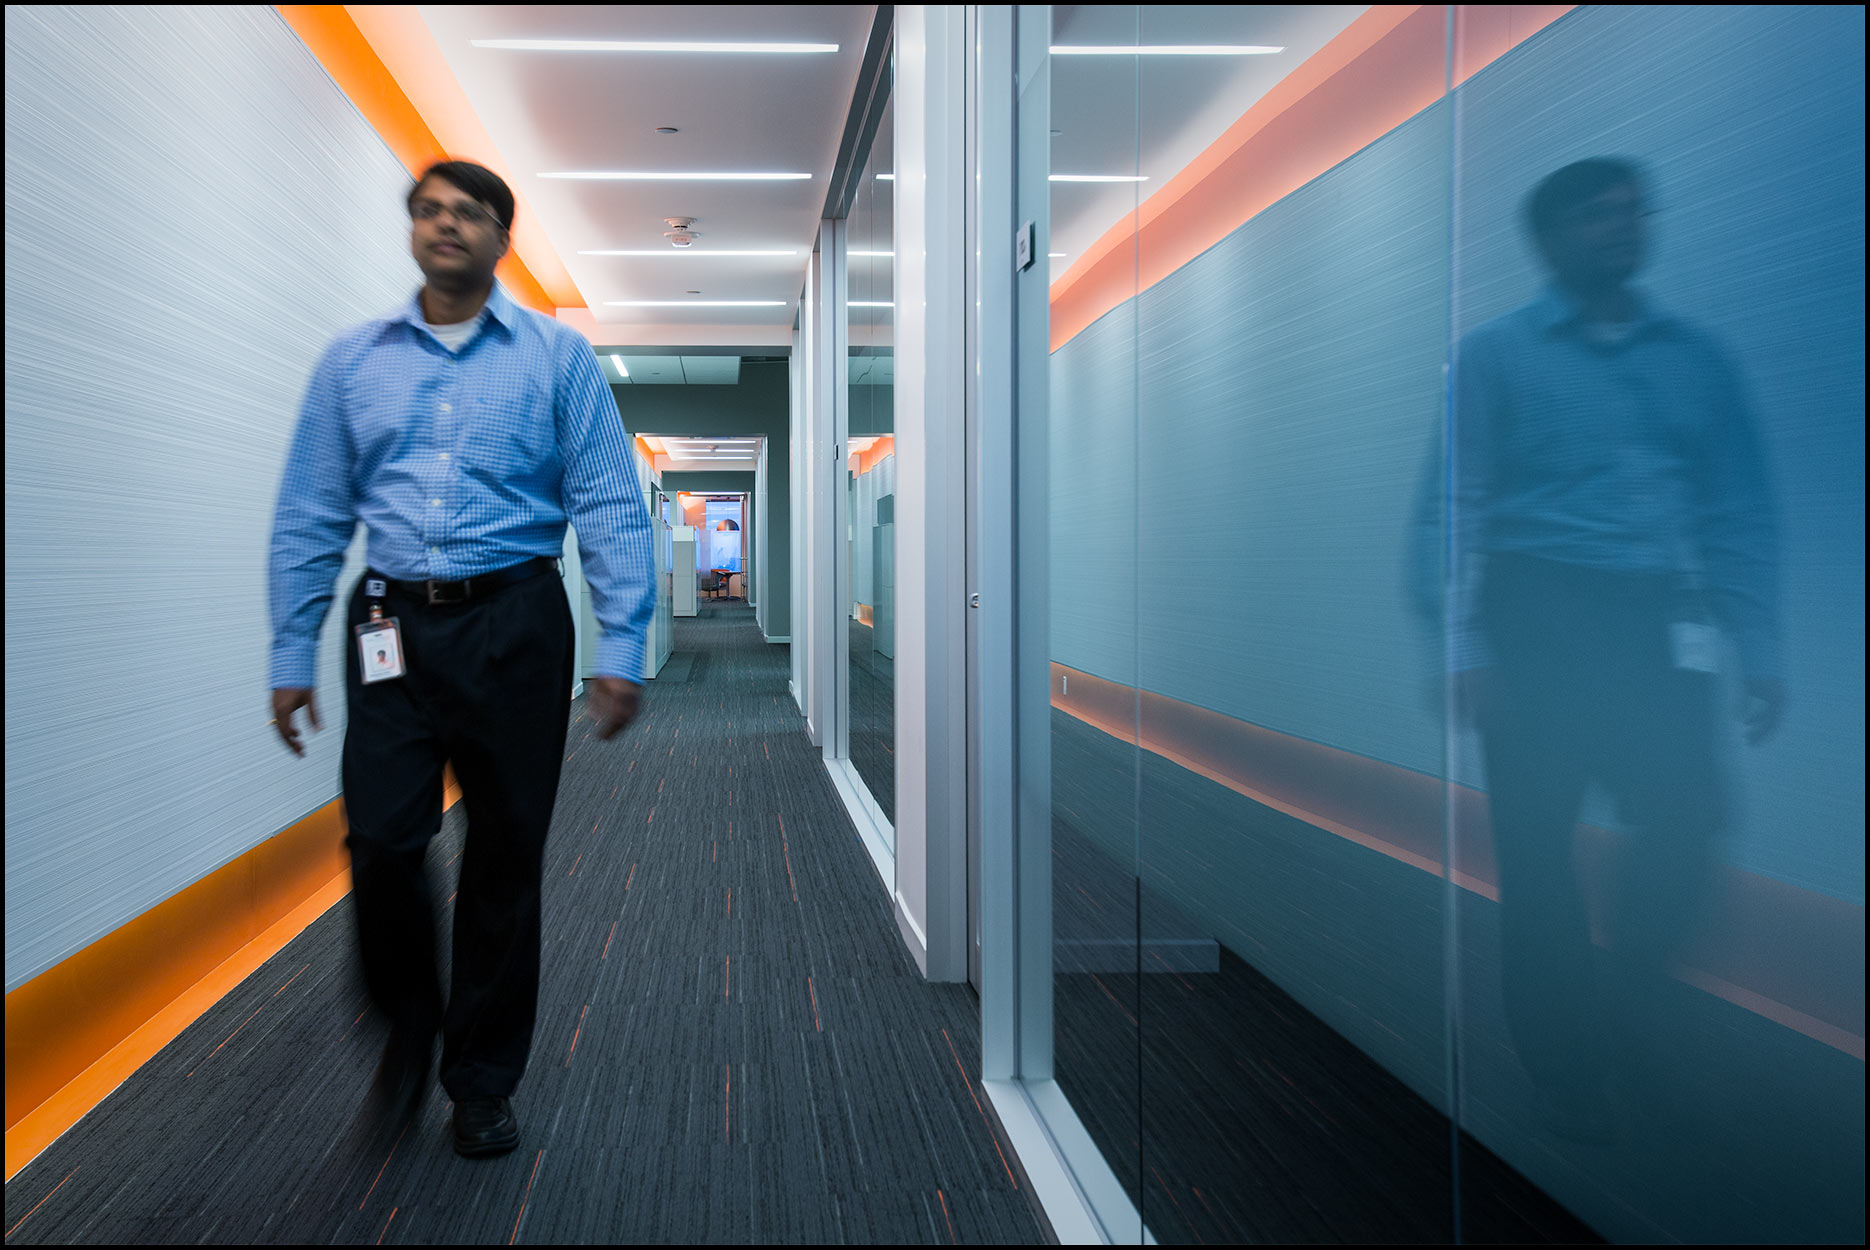 A male employee walks in a hallway with contemporary architectural decor.